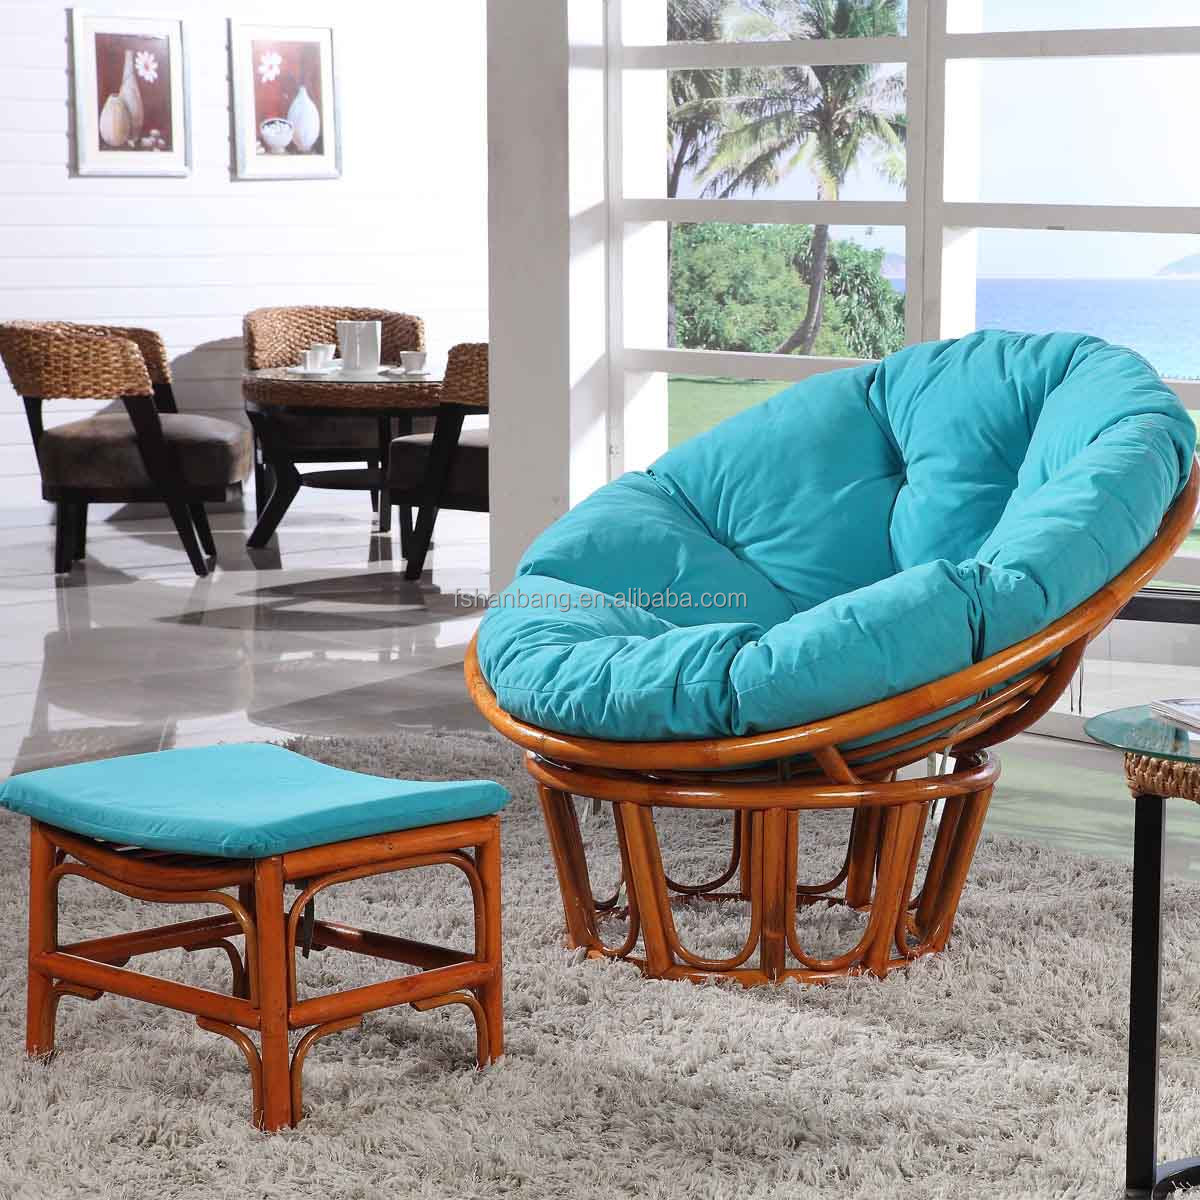 Super Comfortable Large Living Room Dorm Appartment Rattan Wicker Papasan Cha